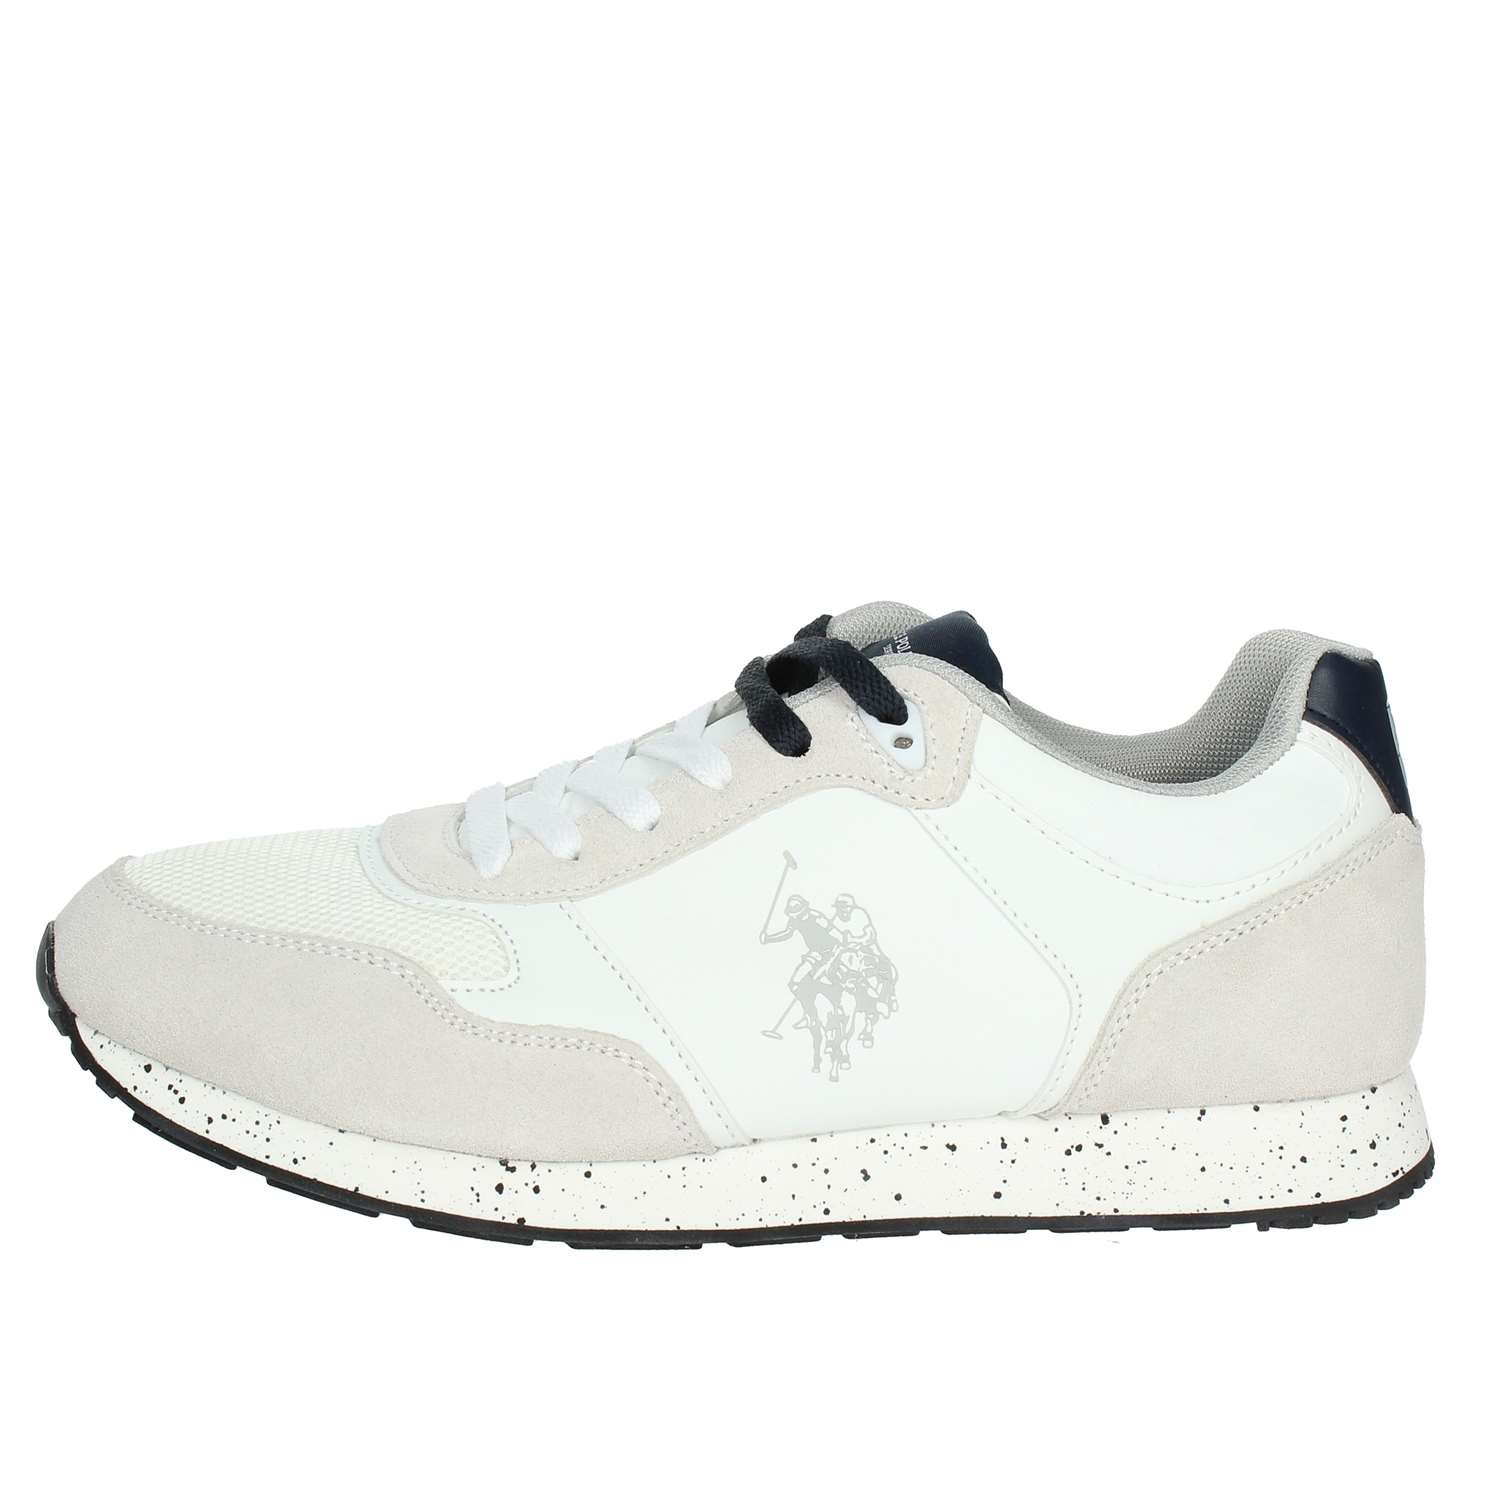 U.S. Polo Assn. FLASH4060S8/LT1 Sneakers Hombre 43 EU|White